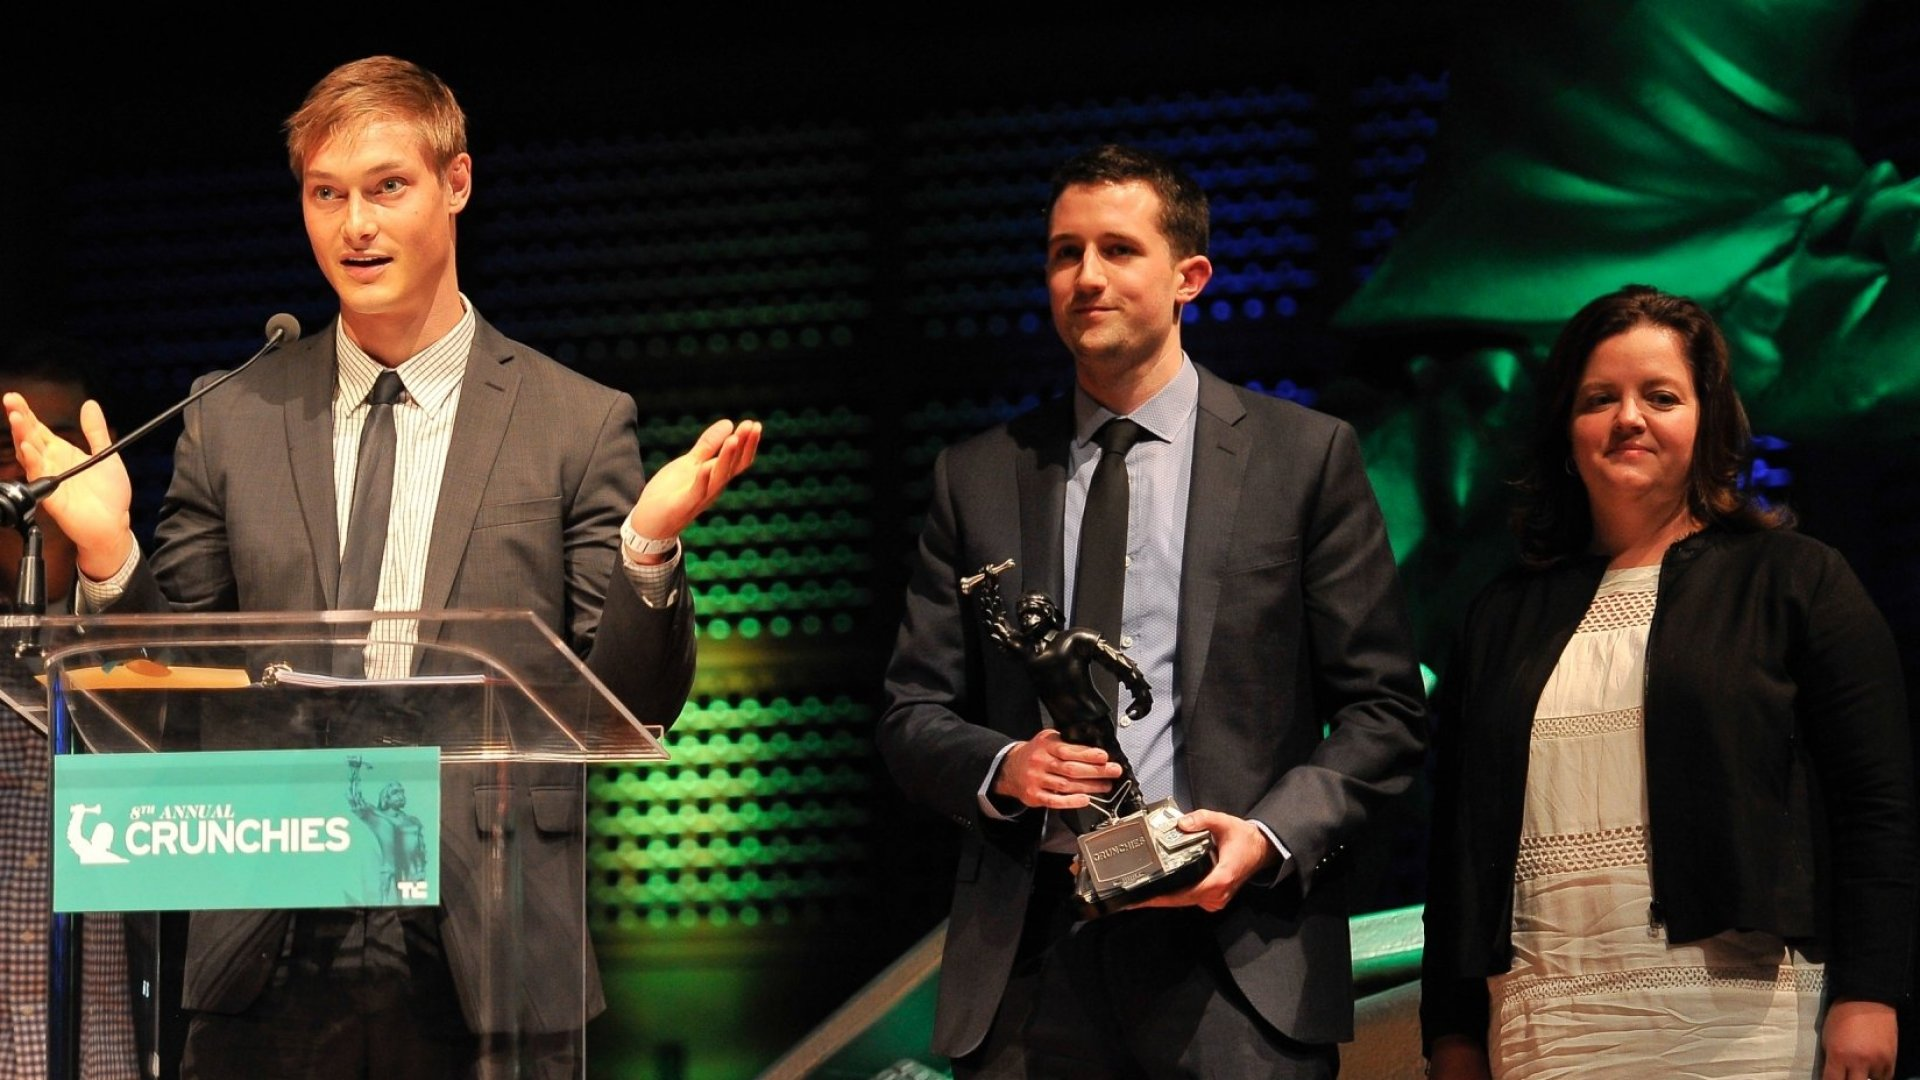 Ryan Hoover, Founder of Product Hunt (left), won Best New Startup of 2014 at the TechCrunch 8th Annual Crunchies Awards earlier this year. The hugely popular site's following helped drive its redesign. (Photo by Steve Jennings/Getty Images for TechCrunch)